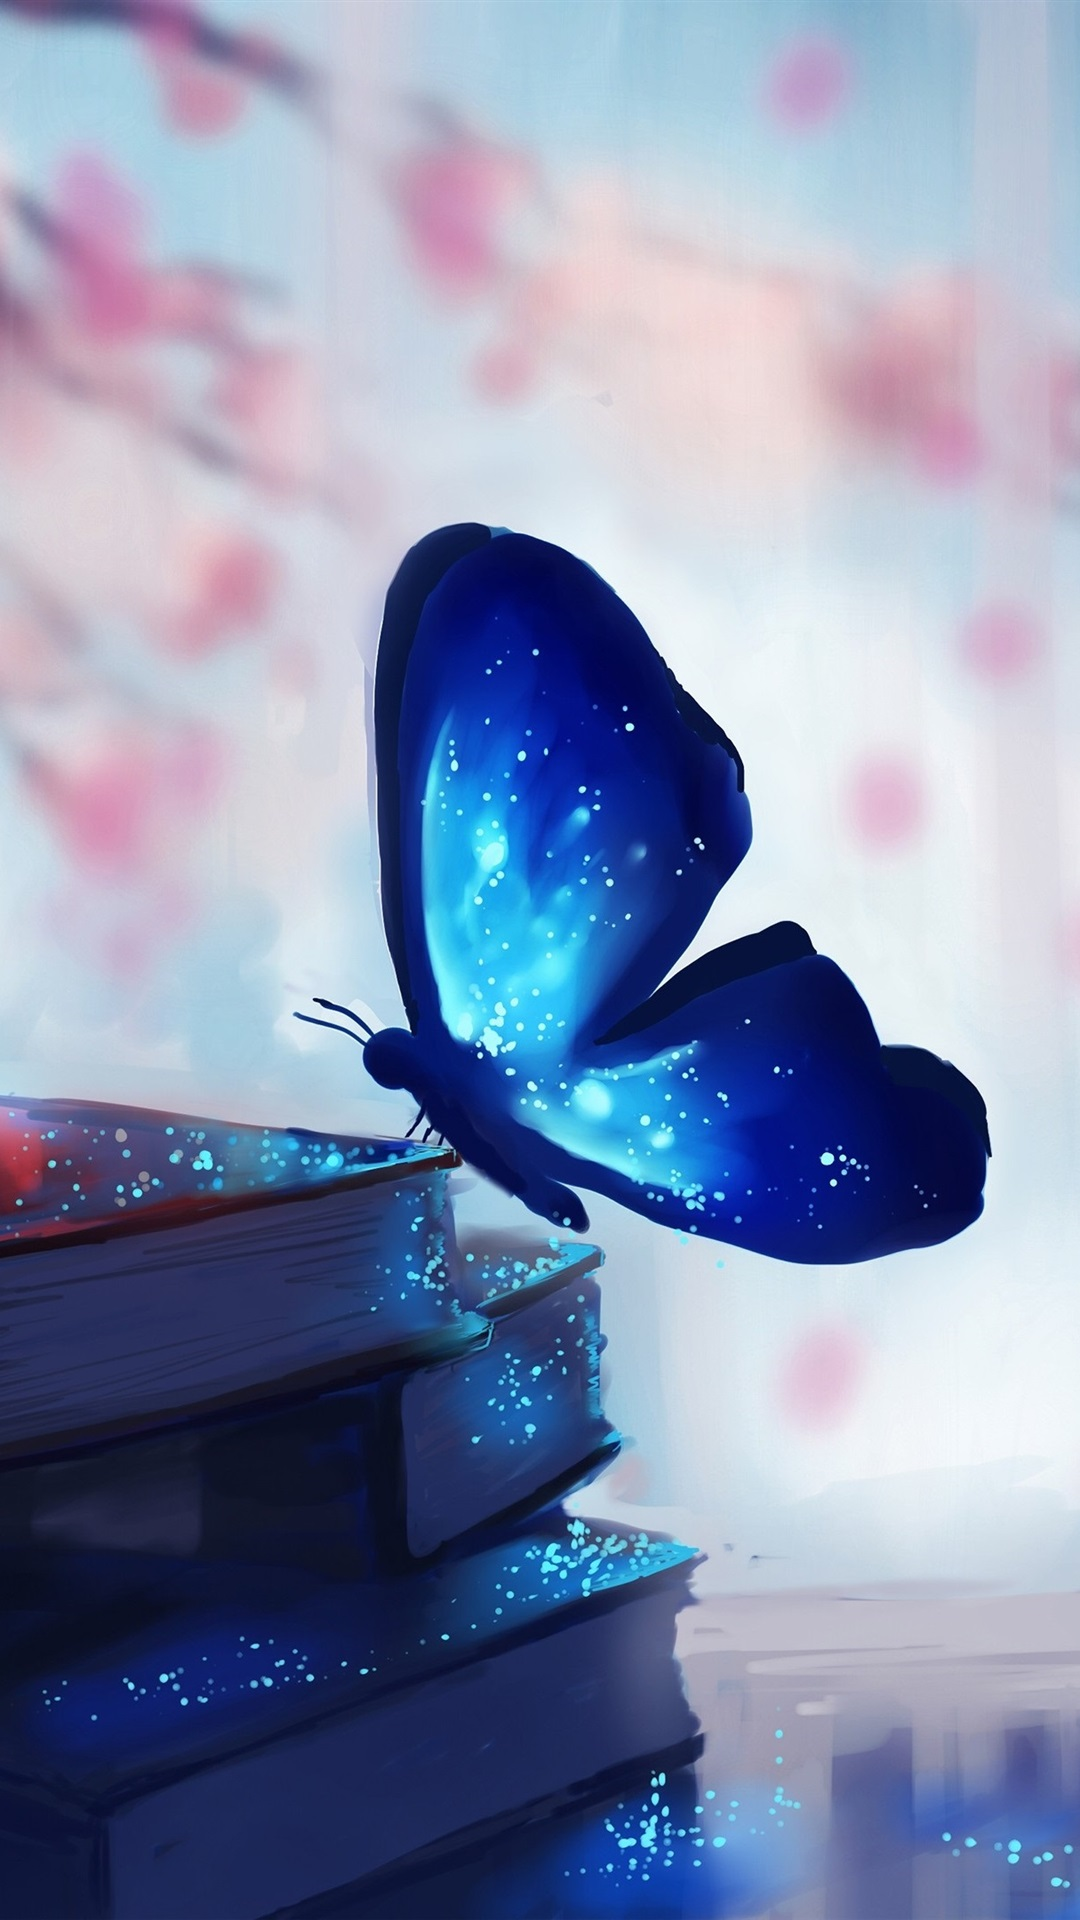 Iphone Blue Butterfly Black Background